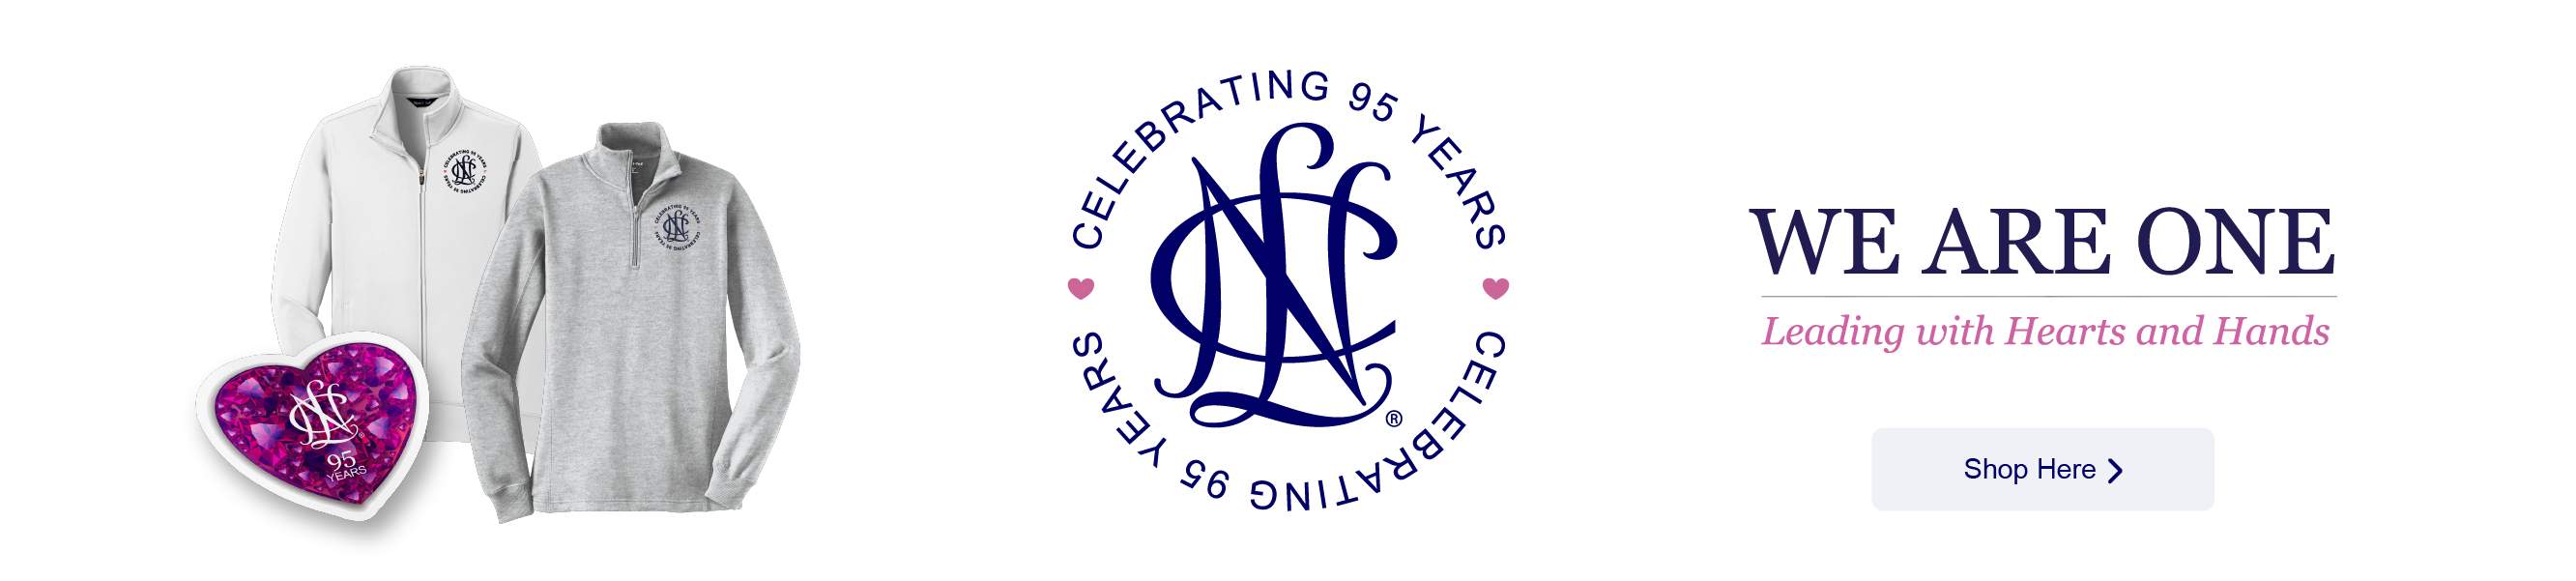 Shop the NCL 95th Anniversary Collection